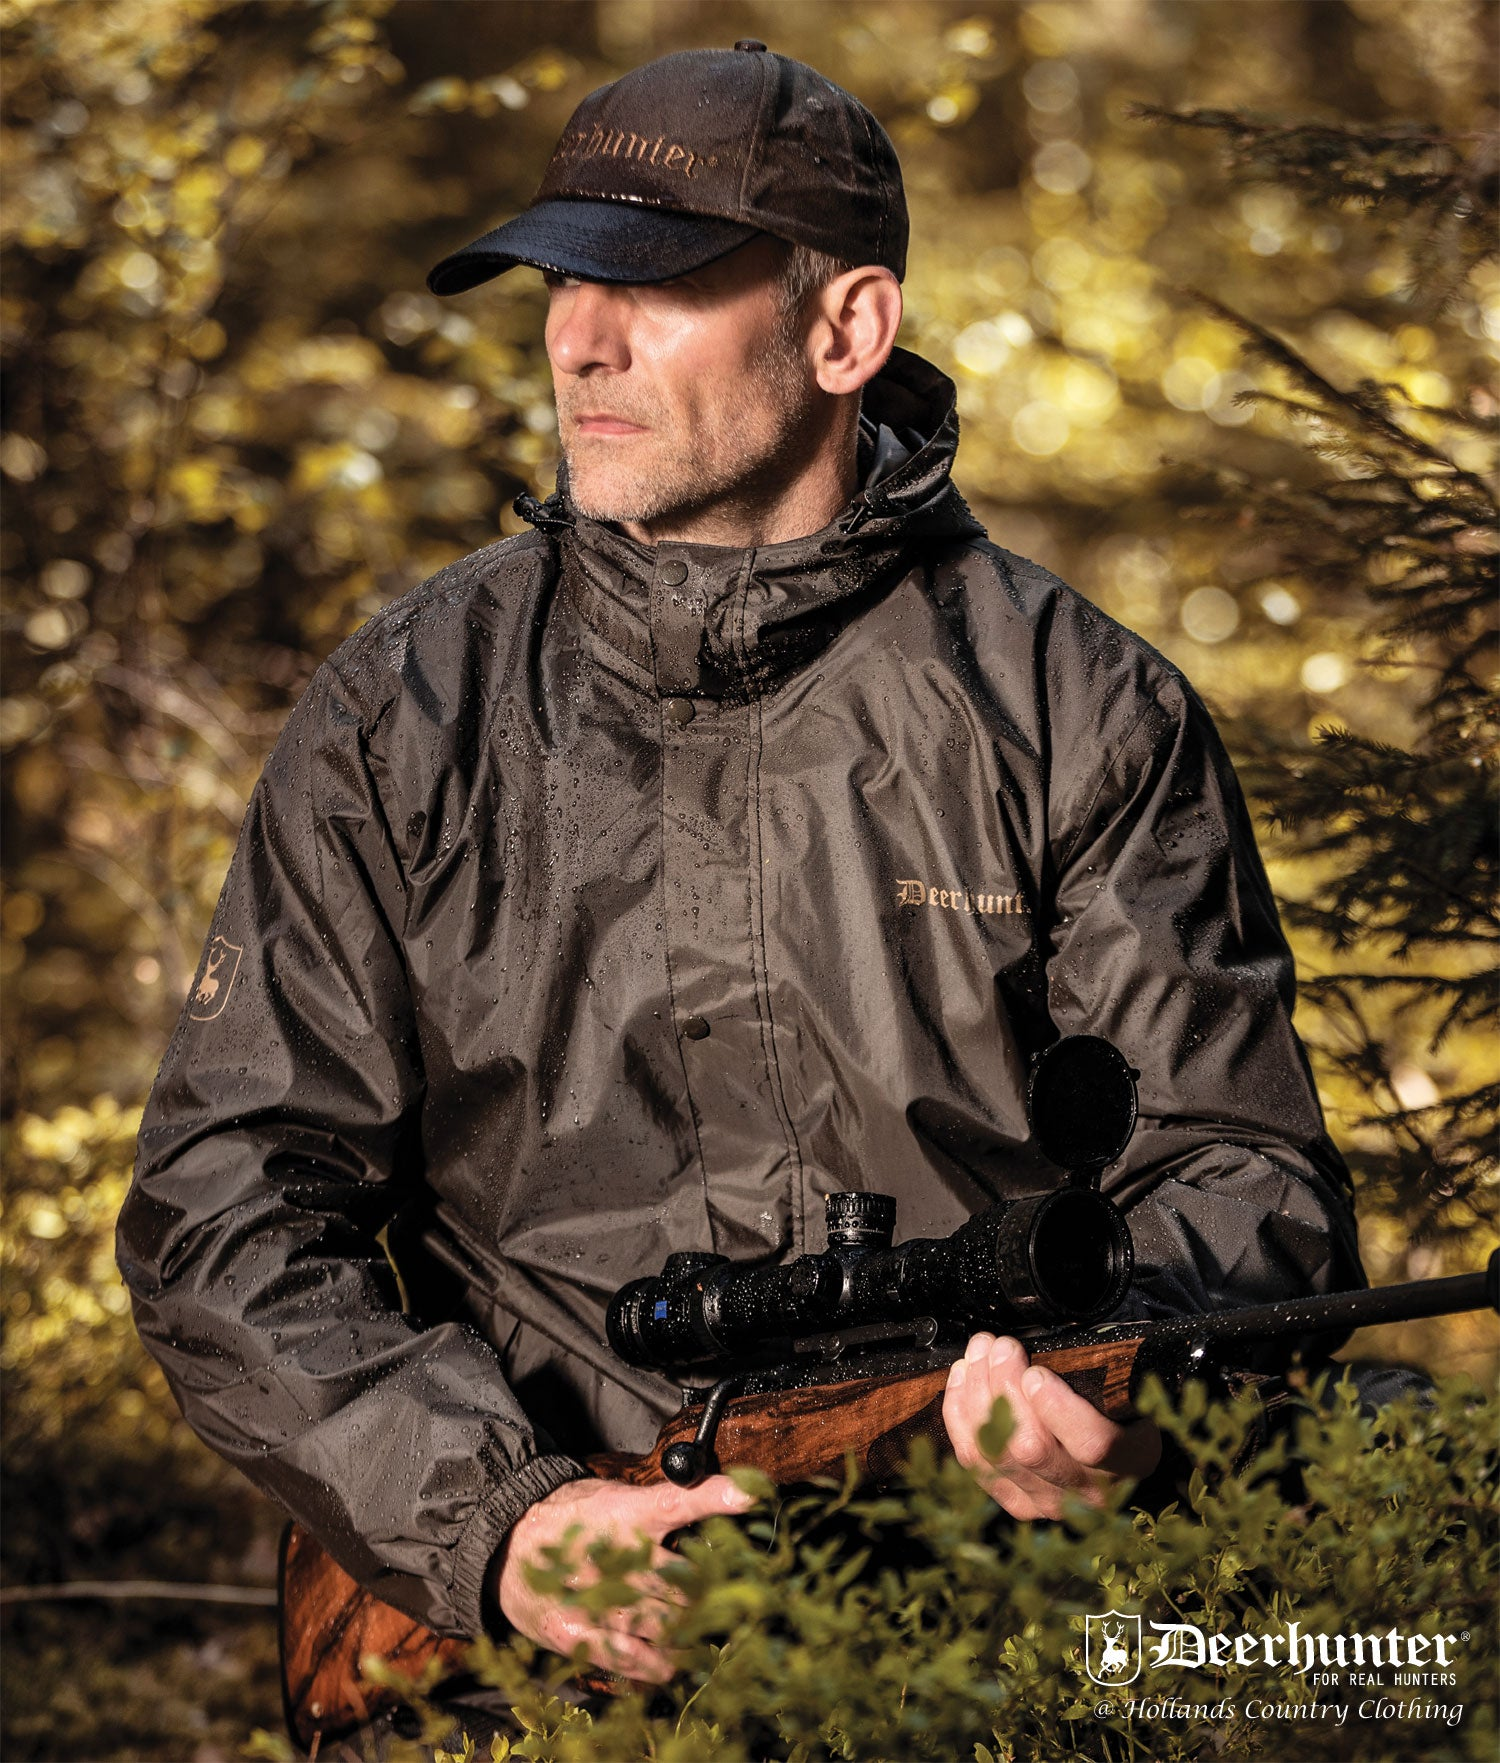 shooting with Deerhunter Survivor Packable Rain Jacket